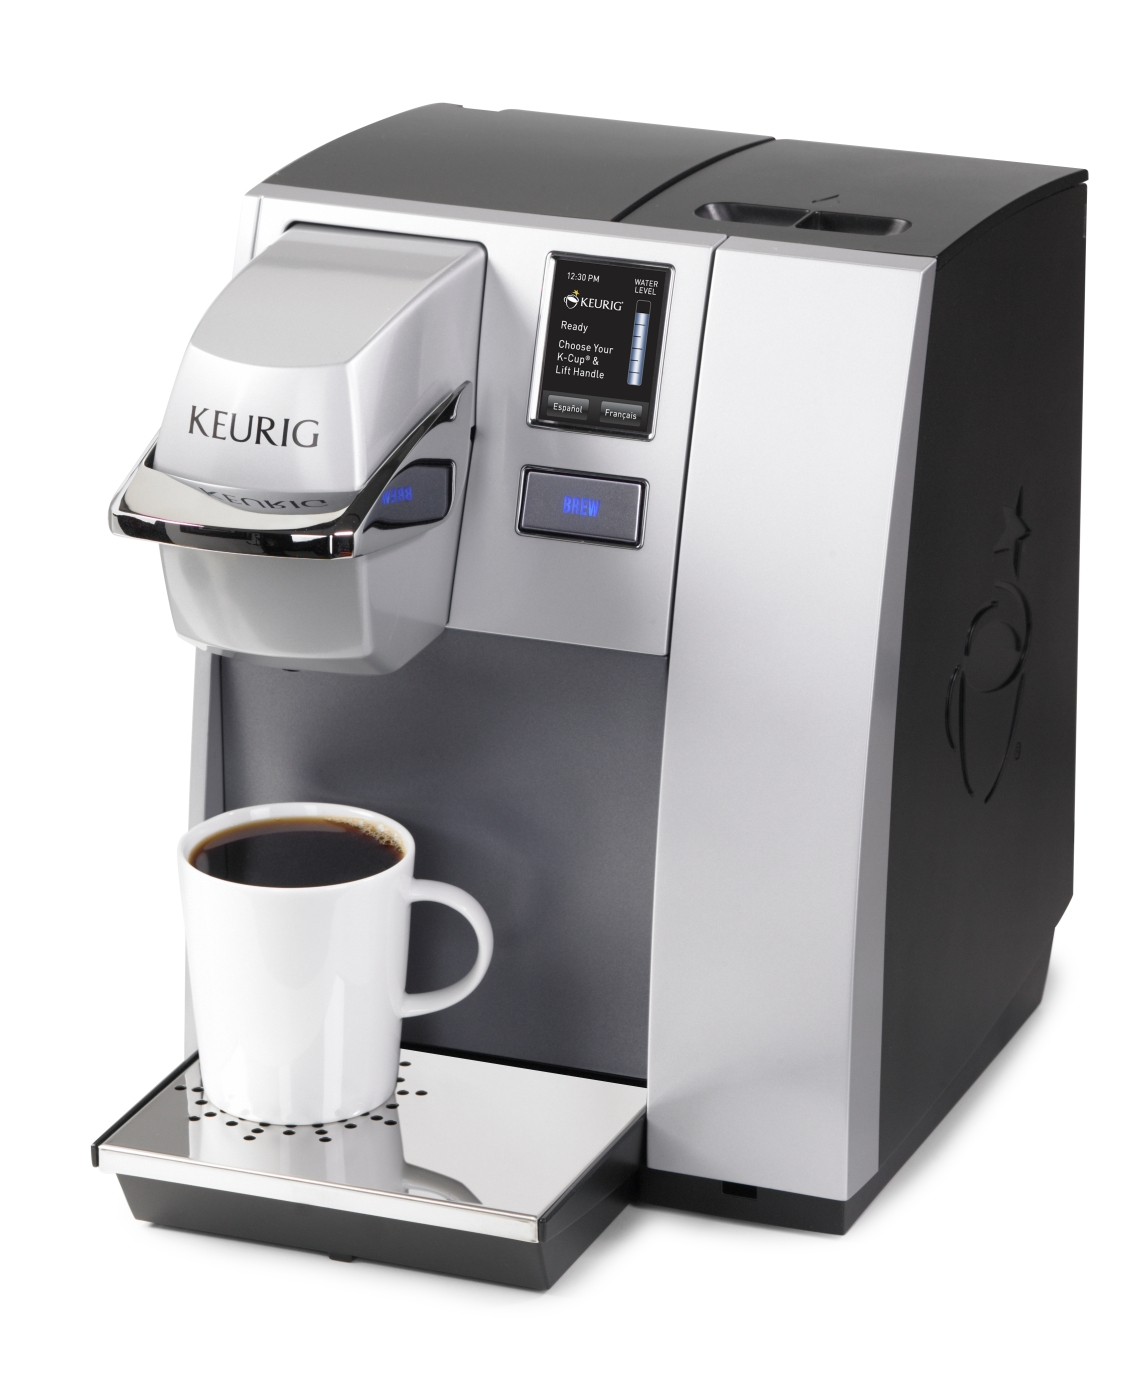 Image Result For How Many Cups Of Coffee Can A Keurig Cup Make